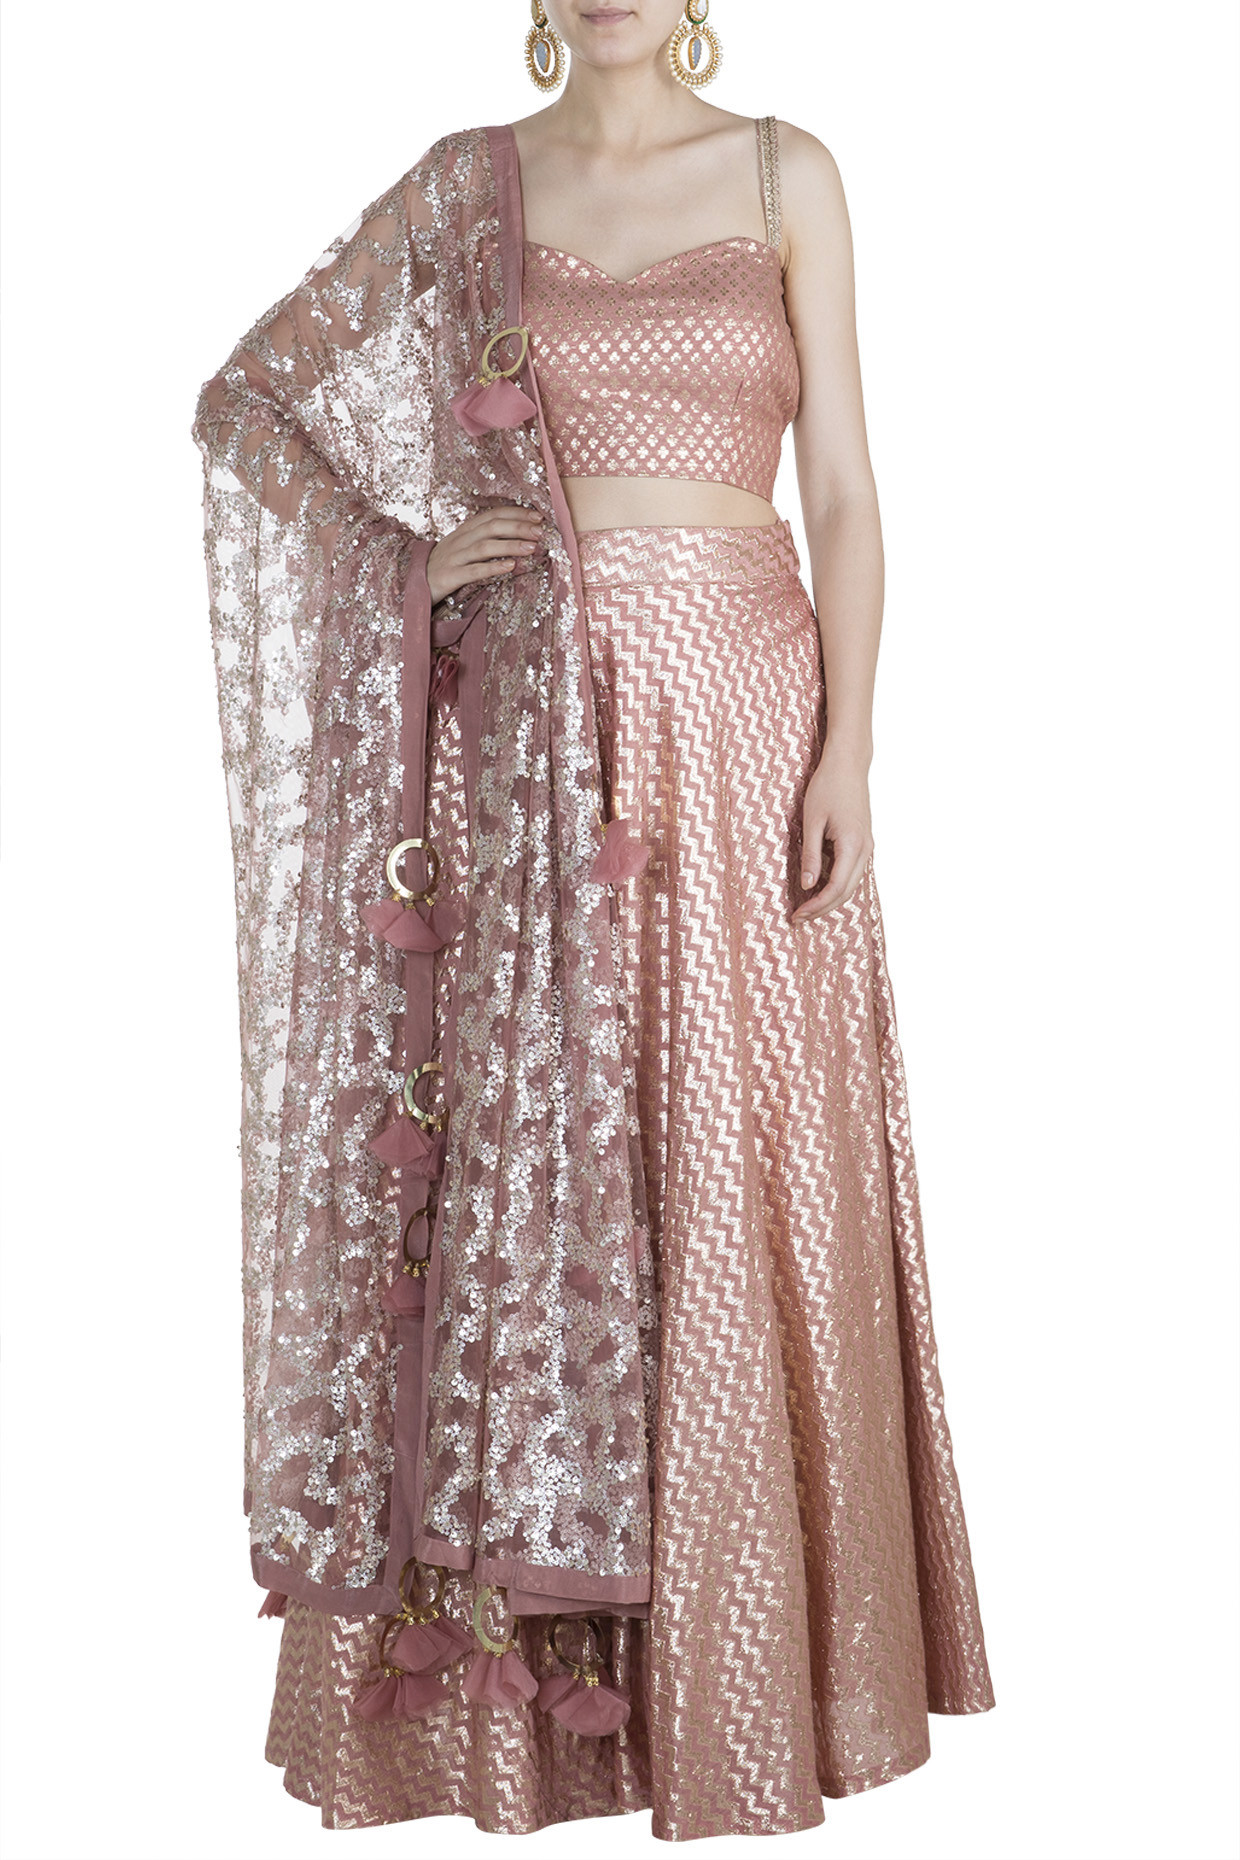 Caramel Embroidered Lehenga Set by Rishi & Vibhuti